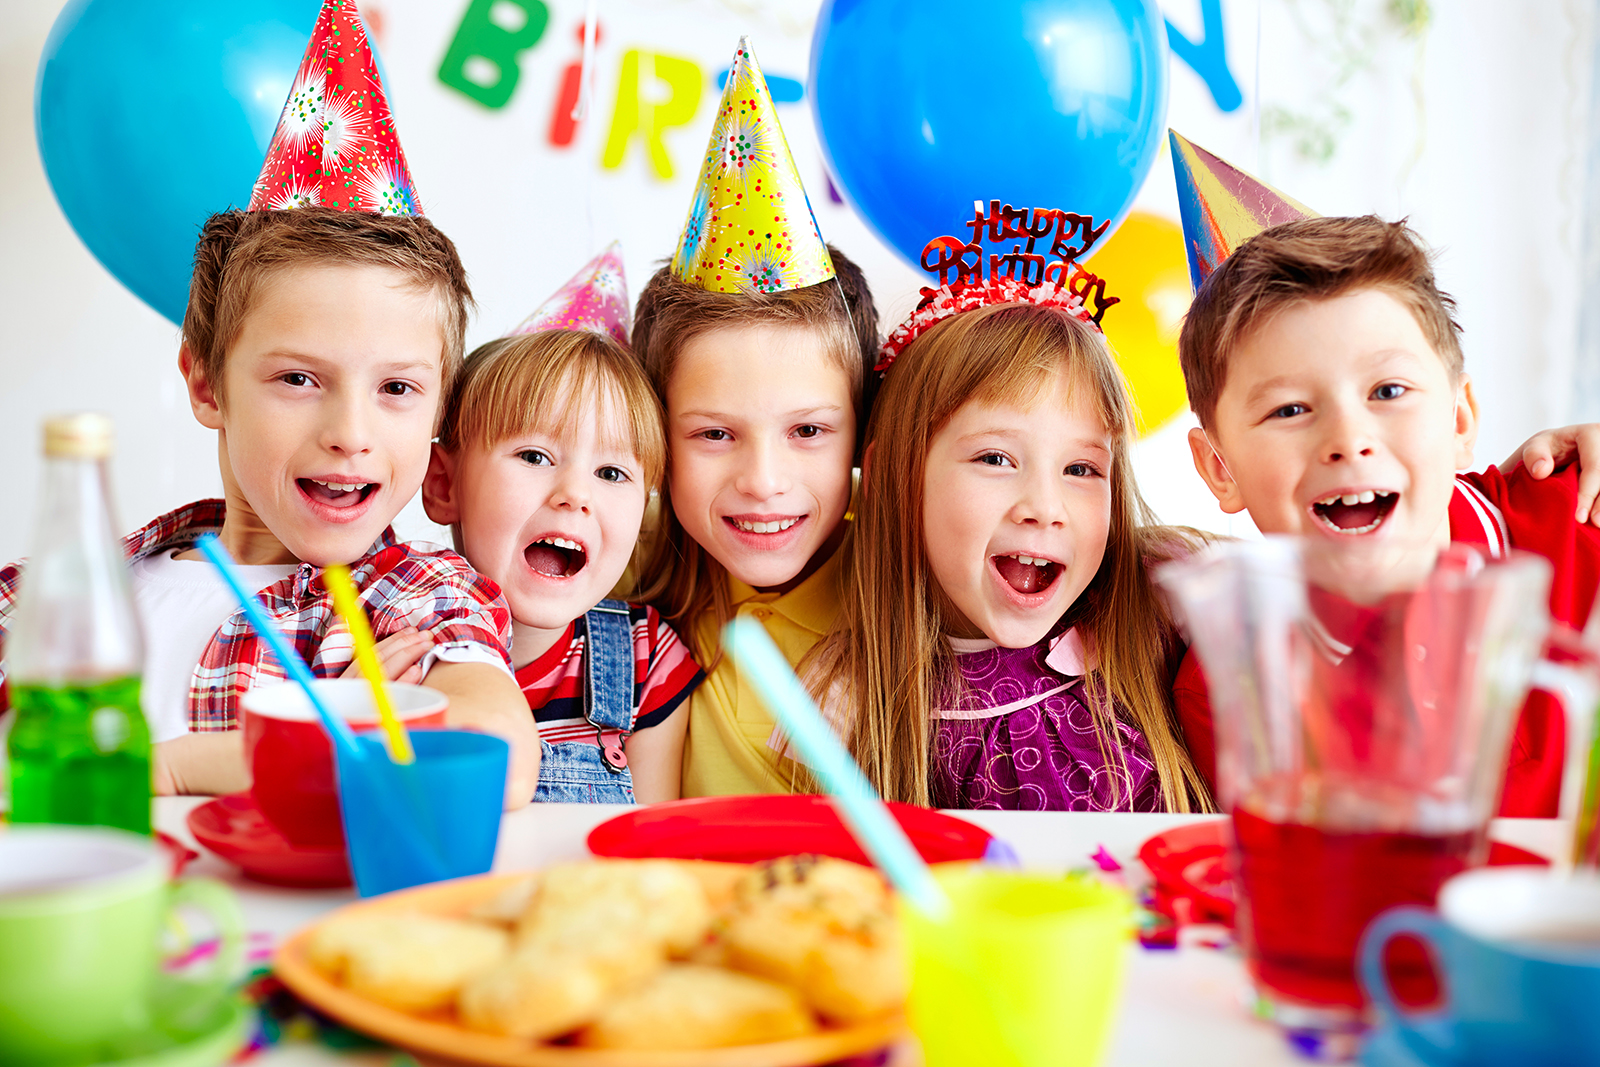 The 5 Challenges to Throwing a Good Kid's Birthday Party